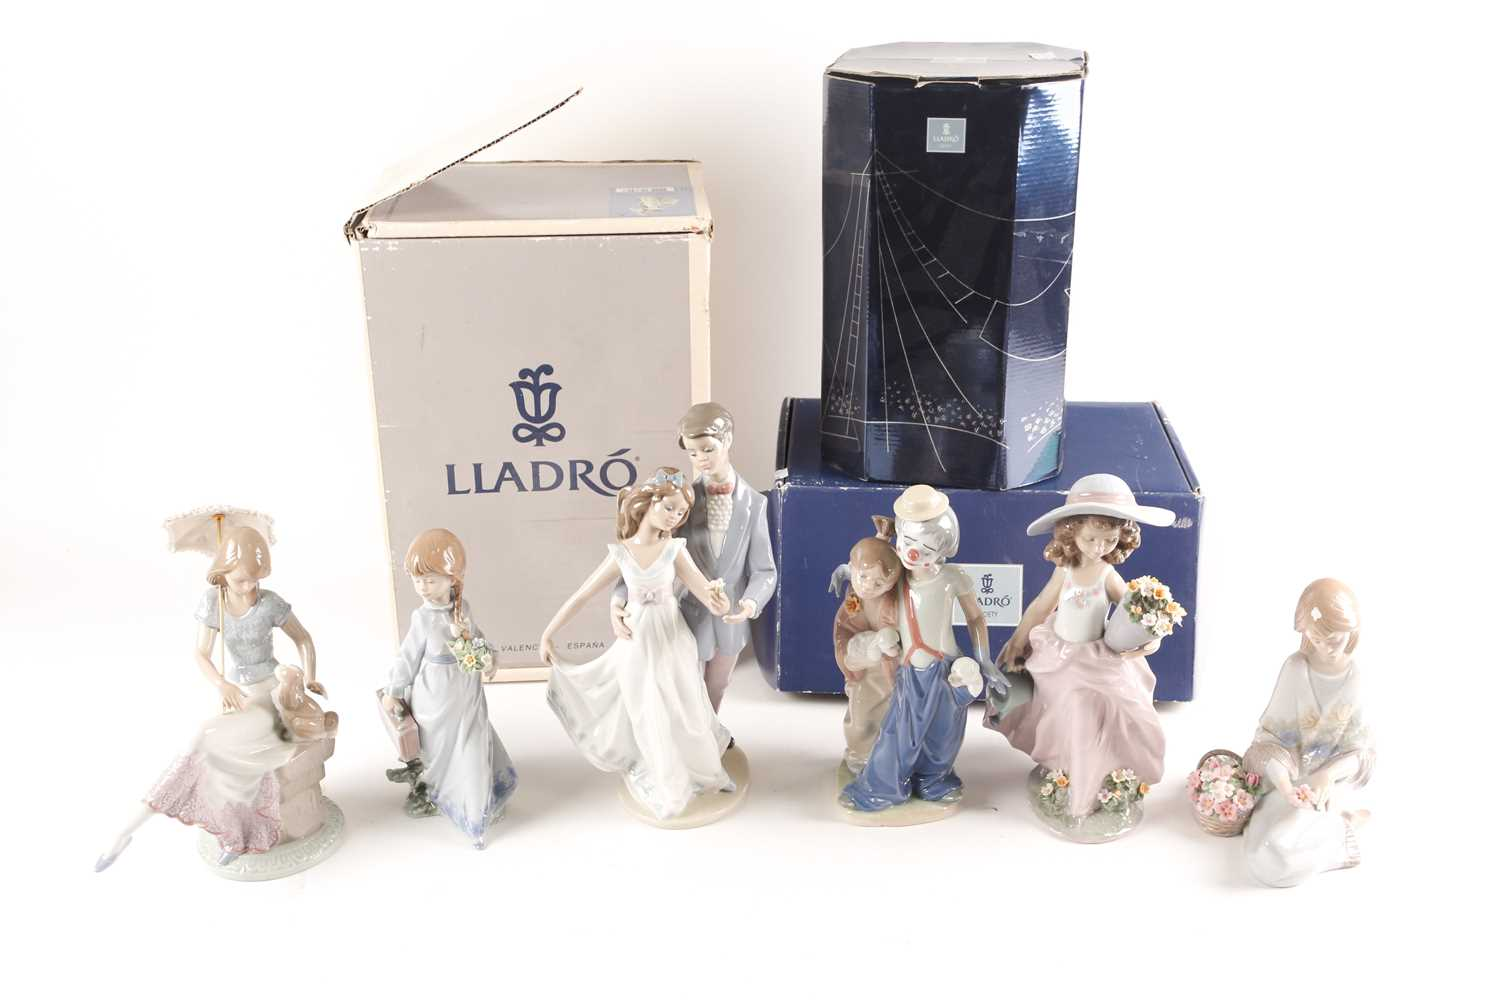 Six Lladro figures, Now & Forever (07642), A Wish Come True, (07676), Pals Forever, (07686),